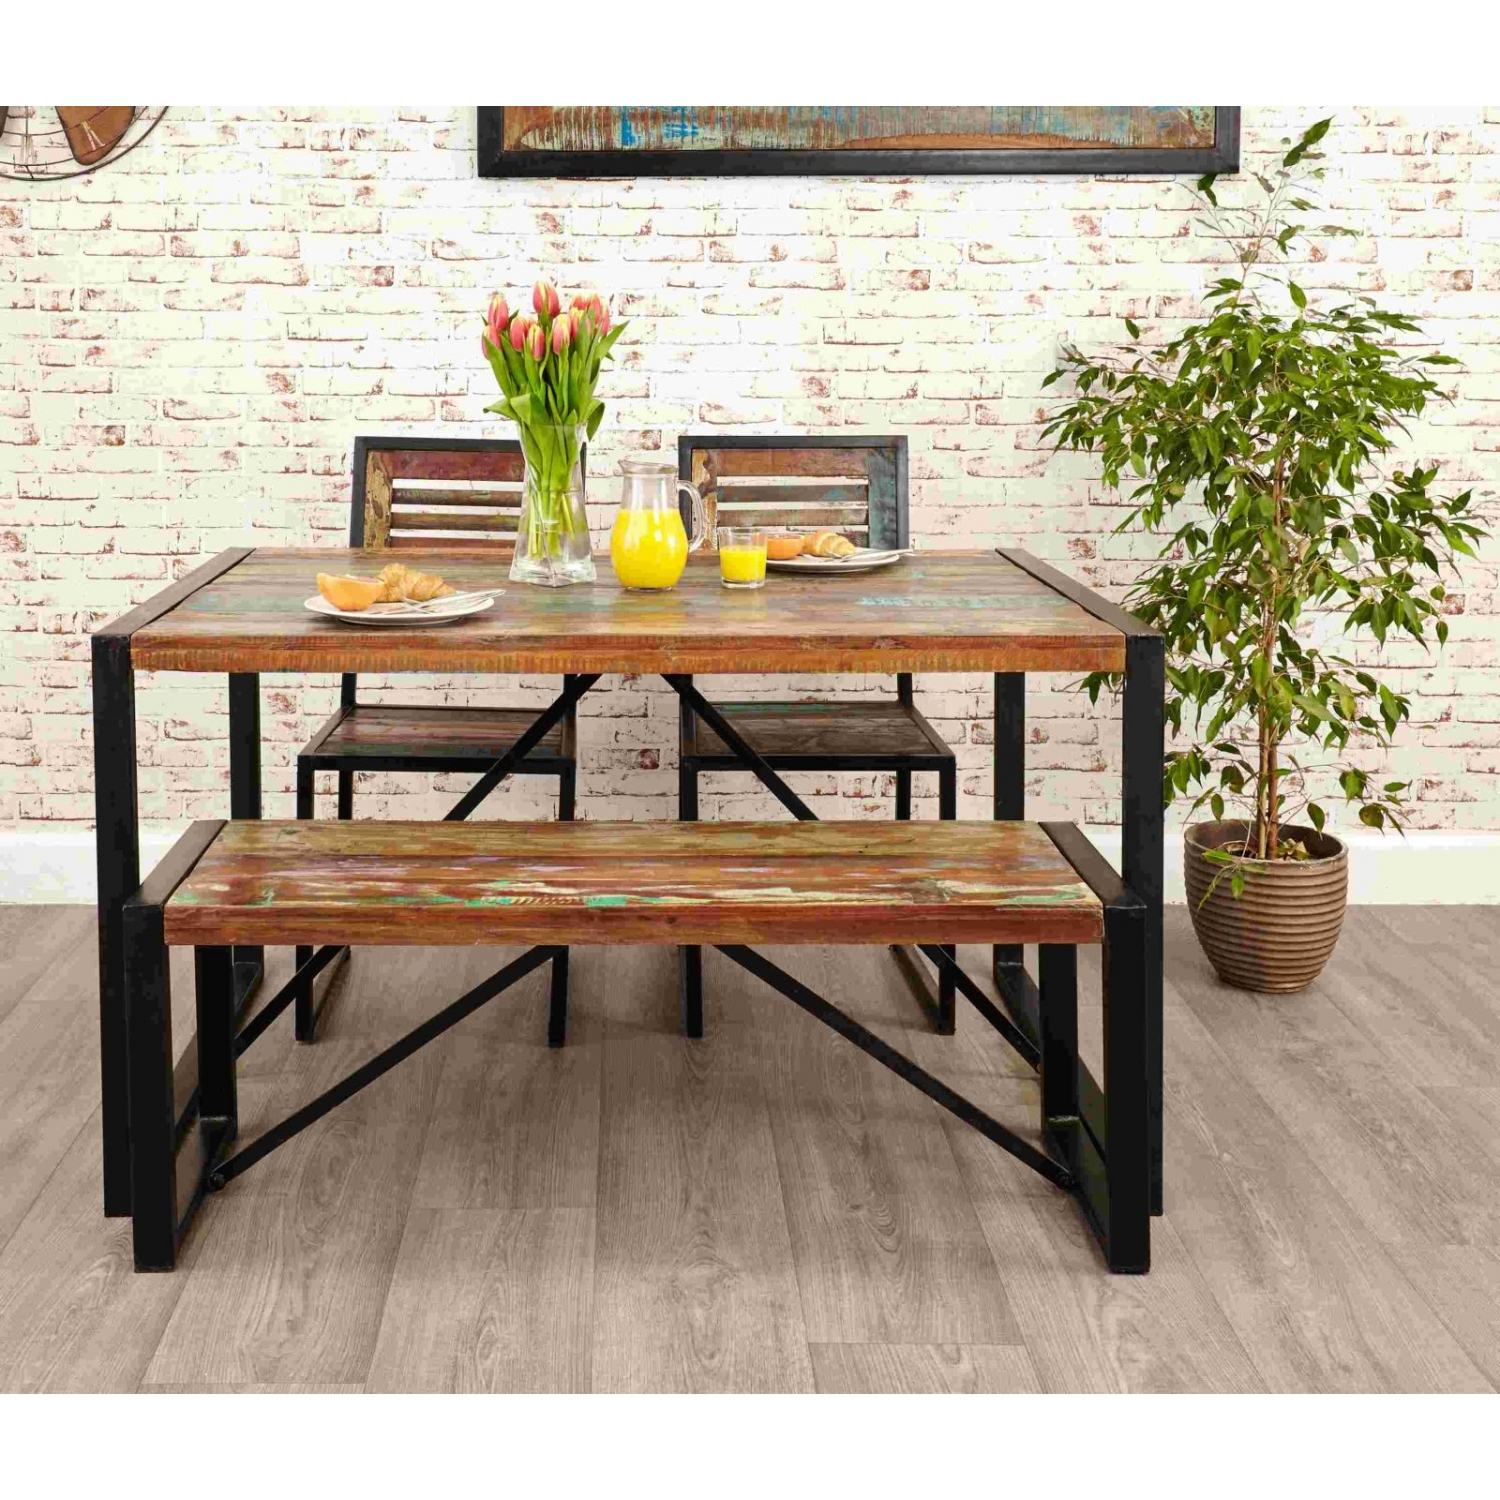 Ragana Reclaimed Timber Dining Table With Bench 3 Dining